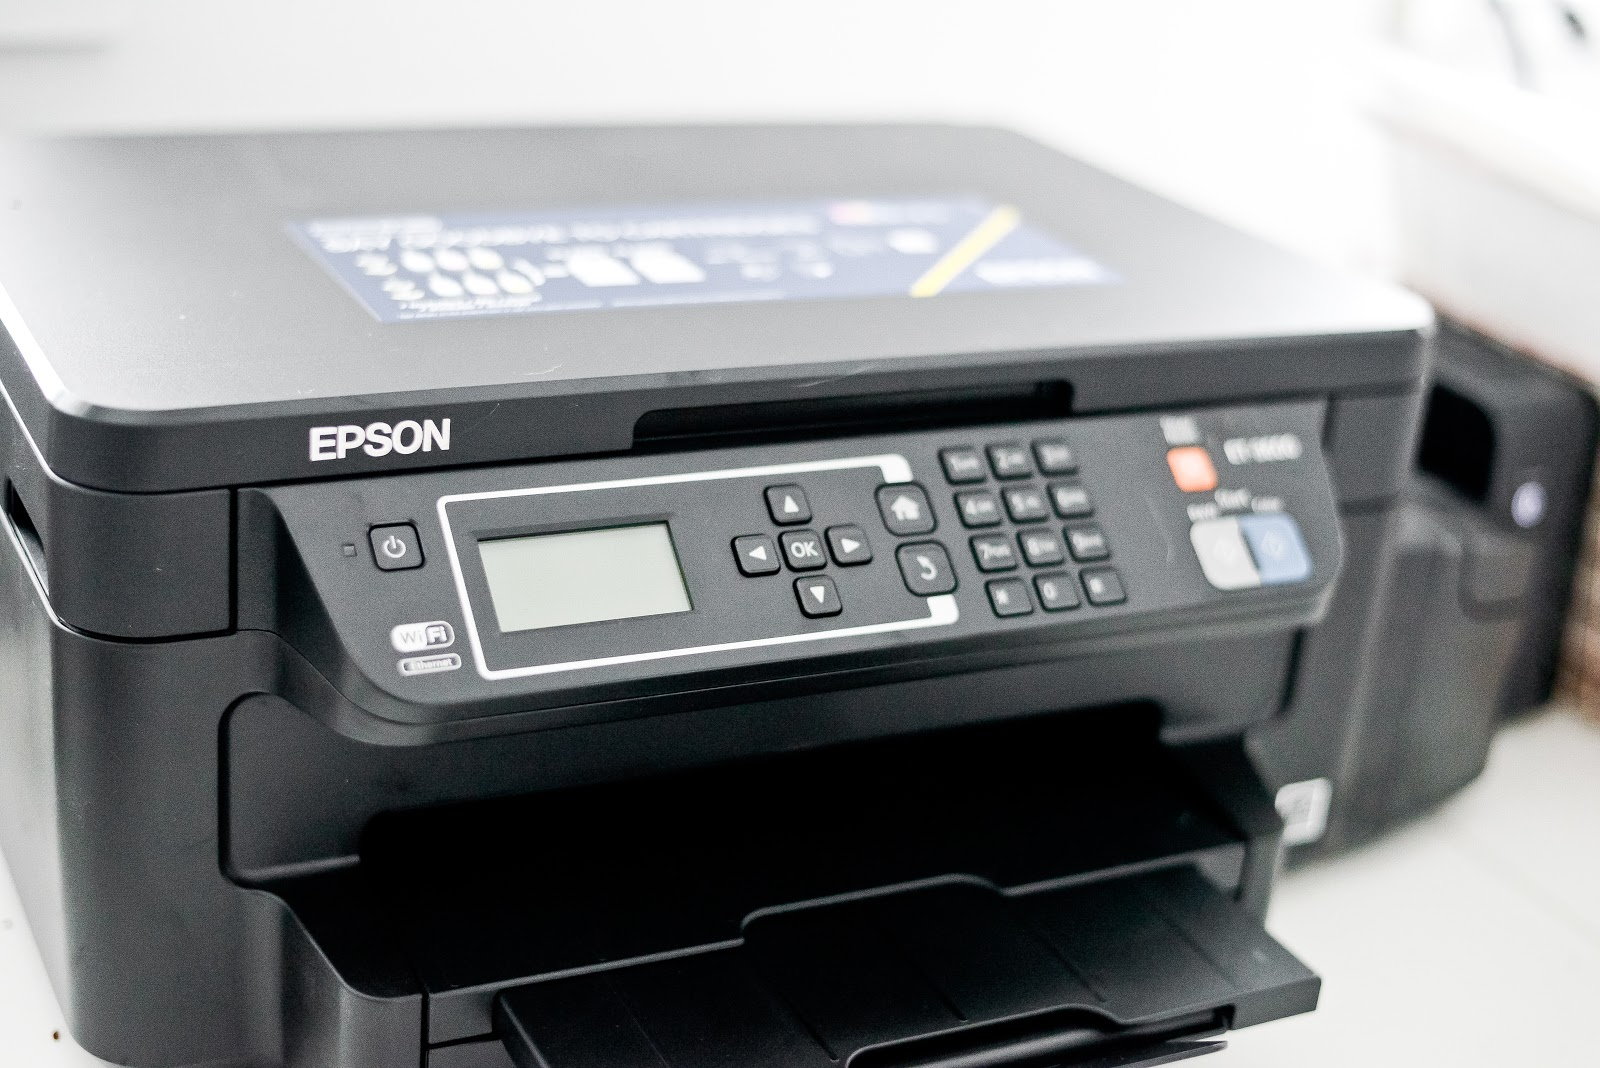 Epson EcoTank ET-3600 3-in-1 inkjet Printer review